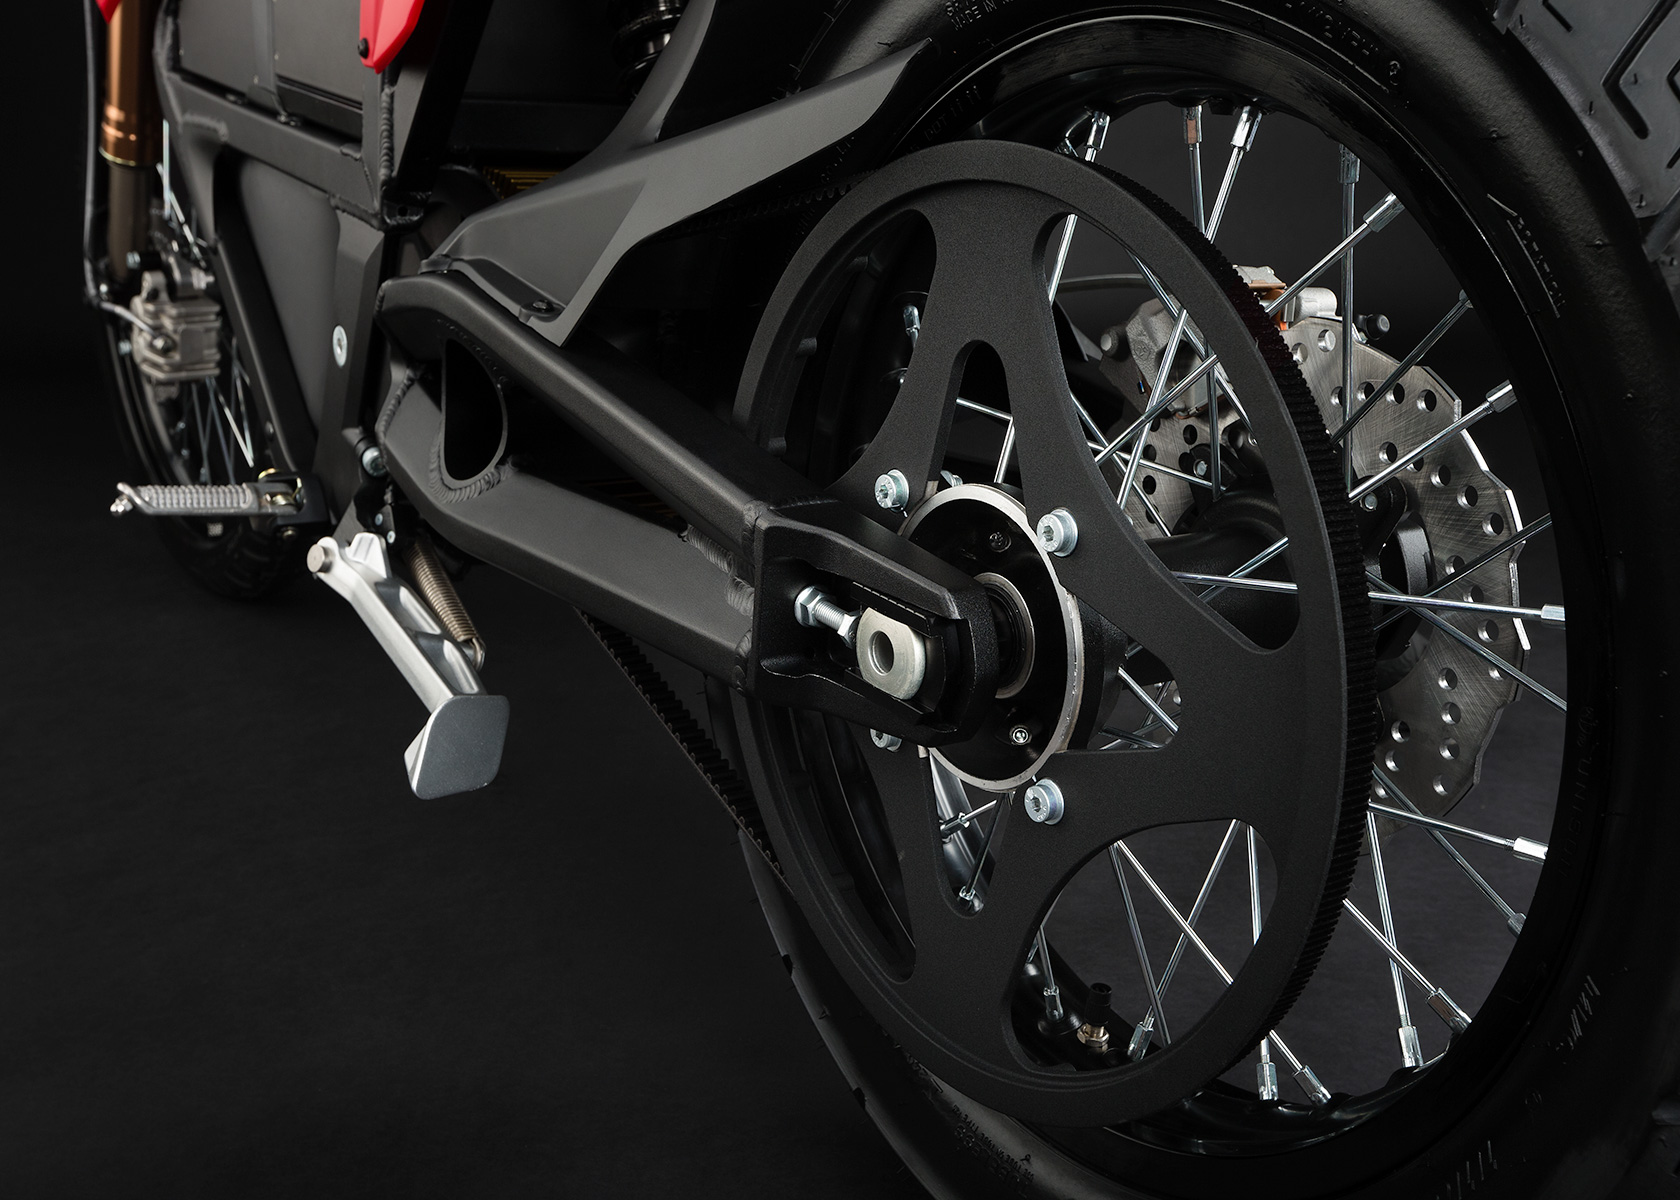 2013 Zero XU Electric Motorcycle: Belt Drive